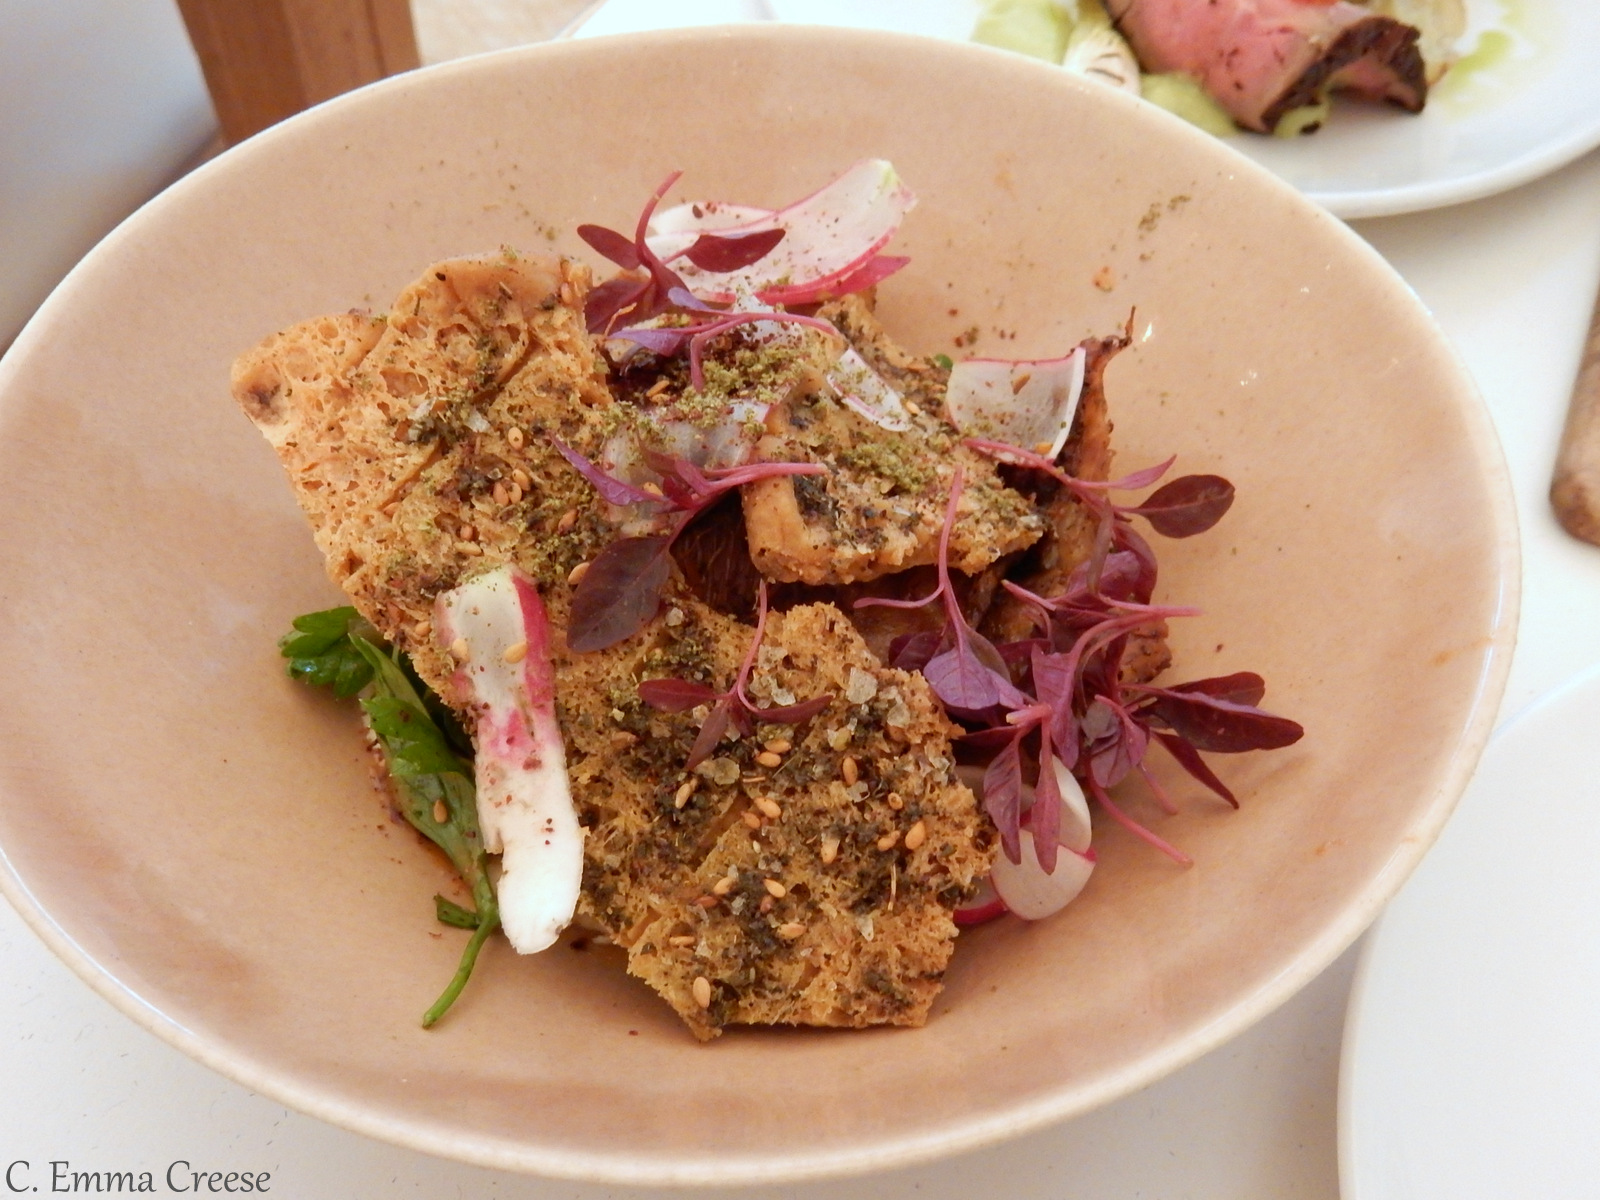 NOPI by Ottolenghi Restaurant Review Adventures of a London Kiwi